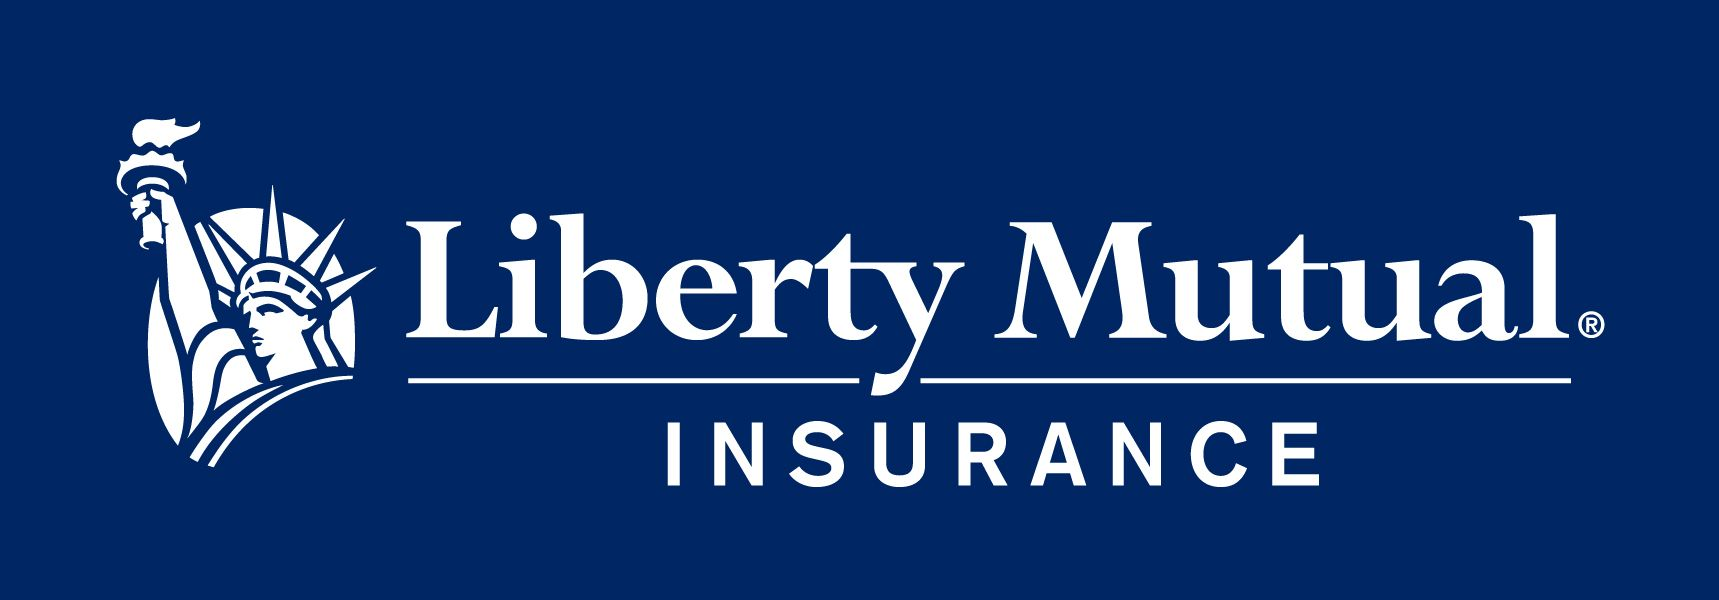 Liberty Mutual Quote Glamorous Image Result For Liberty Mutual Insurance  Branding  Pinterest . Design Inspiration